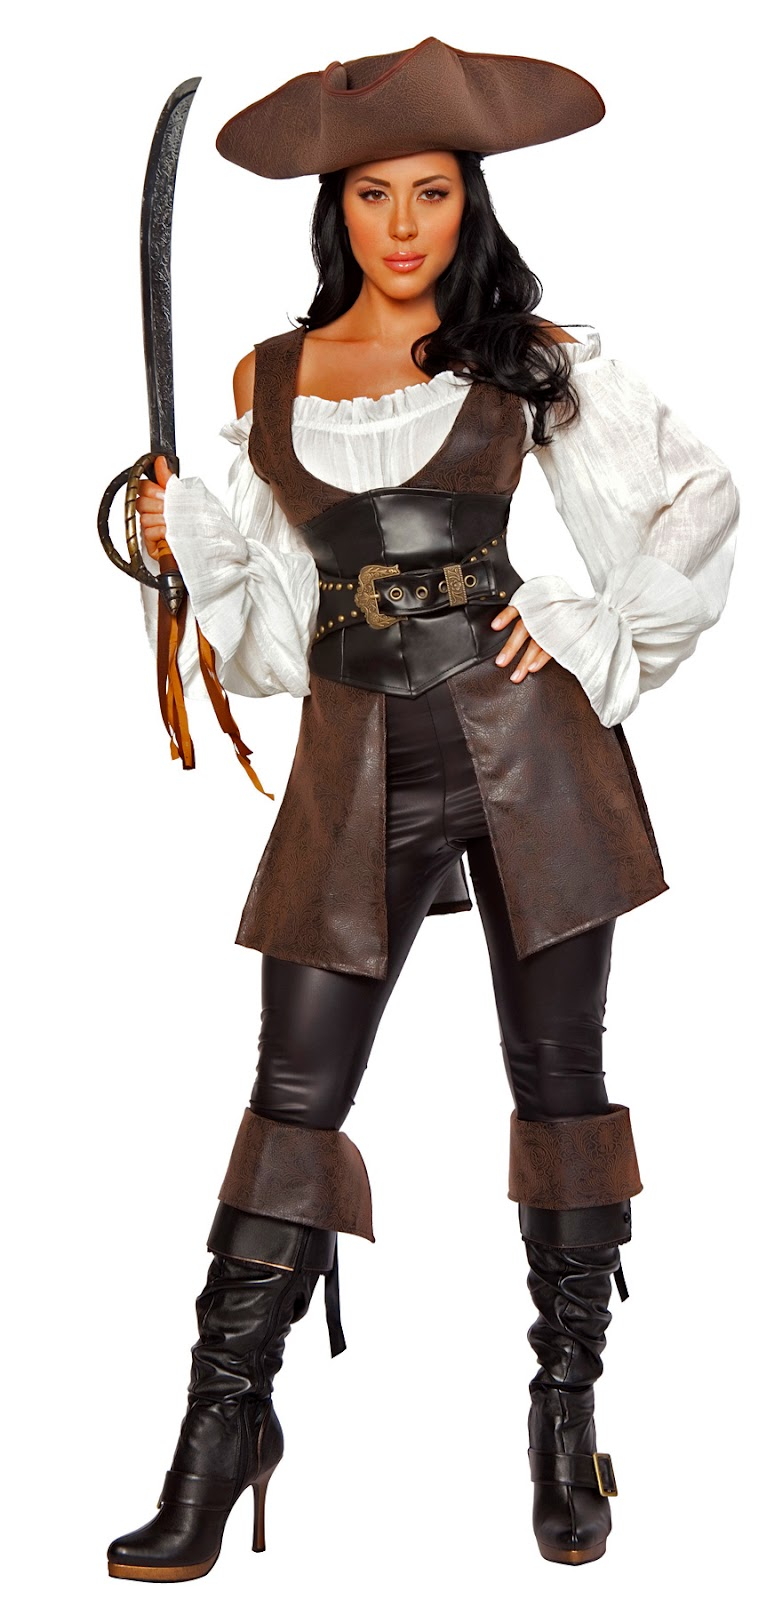 Pirates Stock Photos and Images. 54,063 Pirates pictures Pictures of pirate outfits